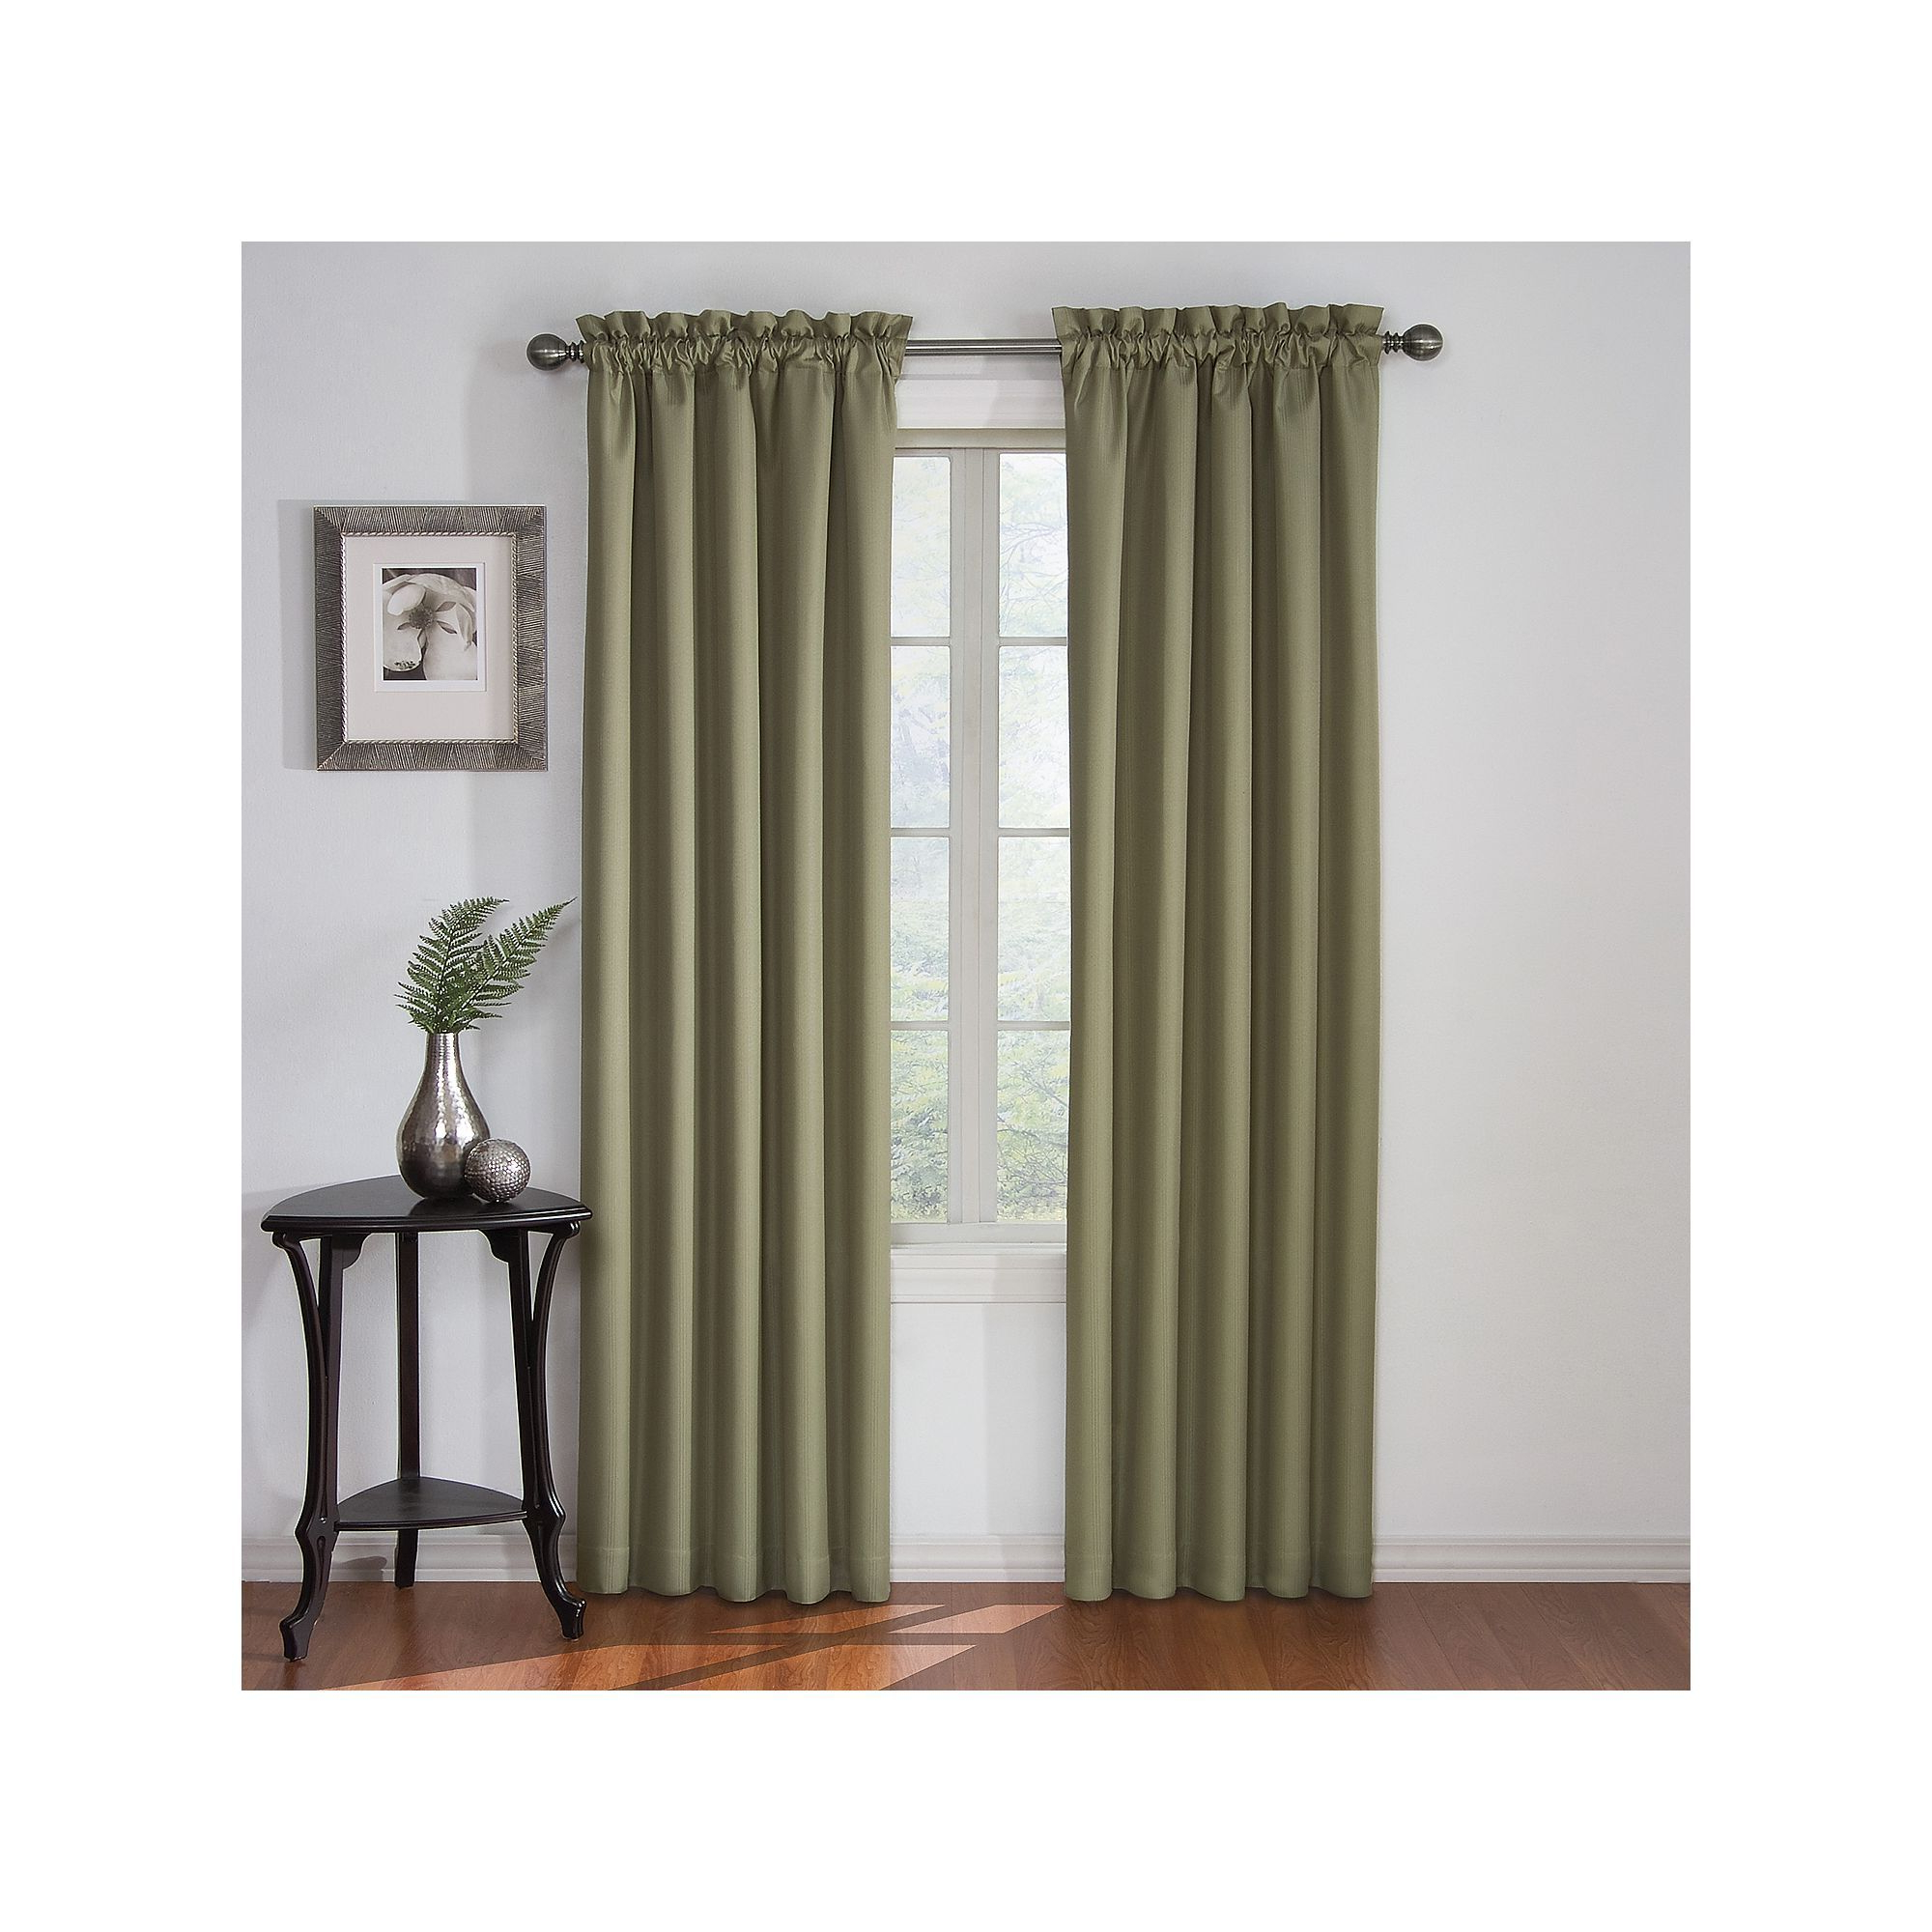 Eclipse Corinne Thermaback Curtain Panels Intended For Well Known Eclipse Corinne Thermaback Blackout Curtain, Green (View 8 of 20)